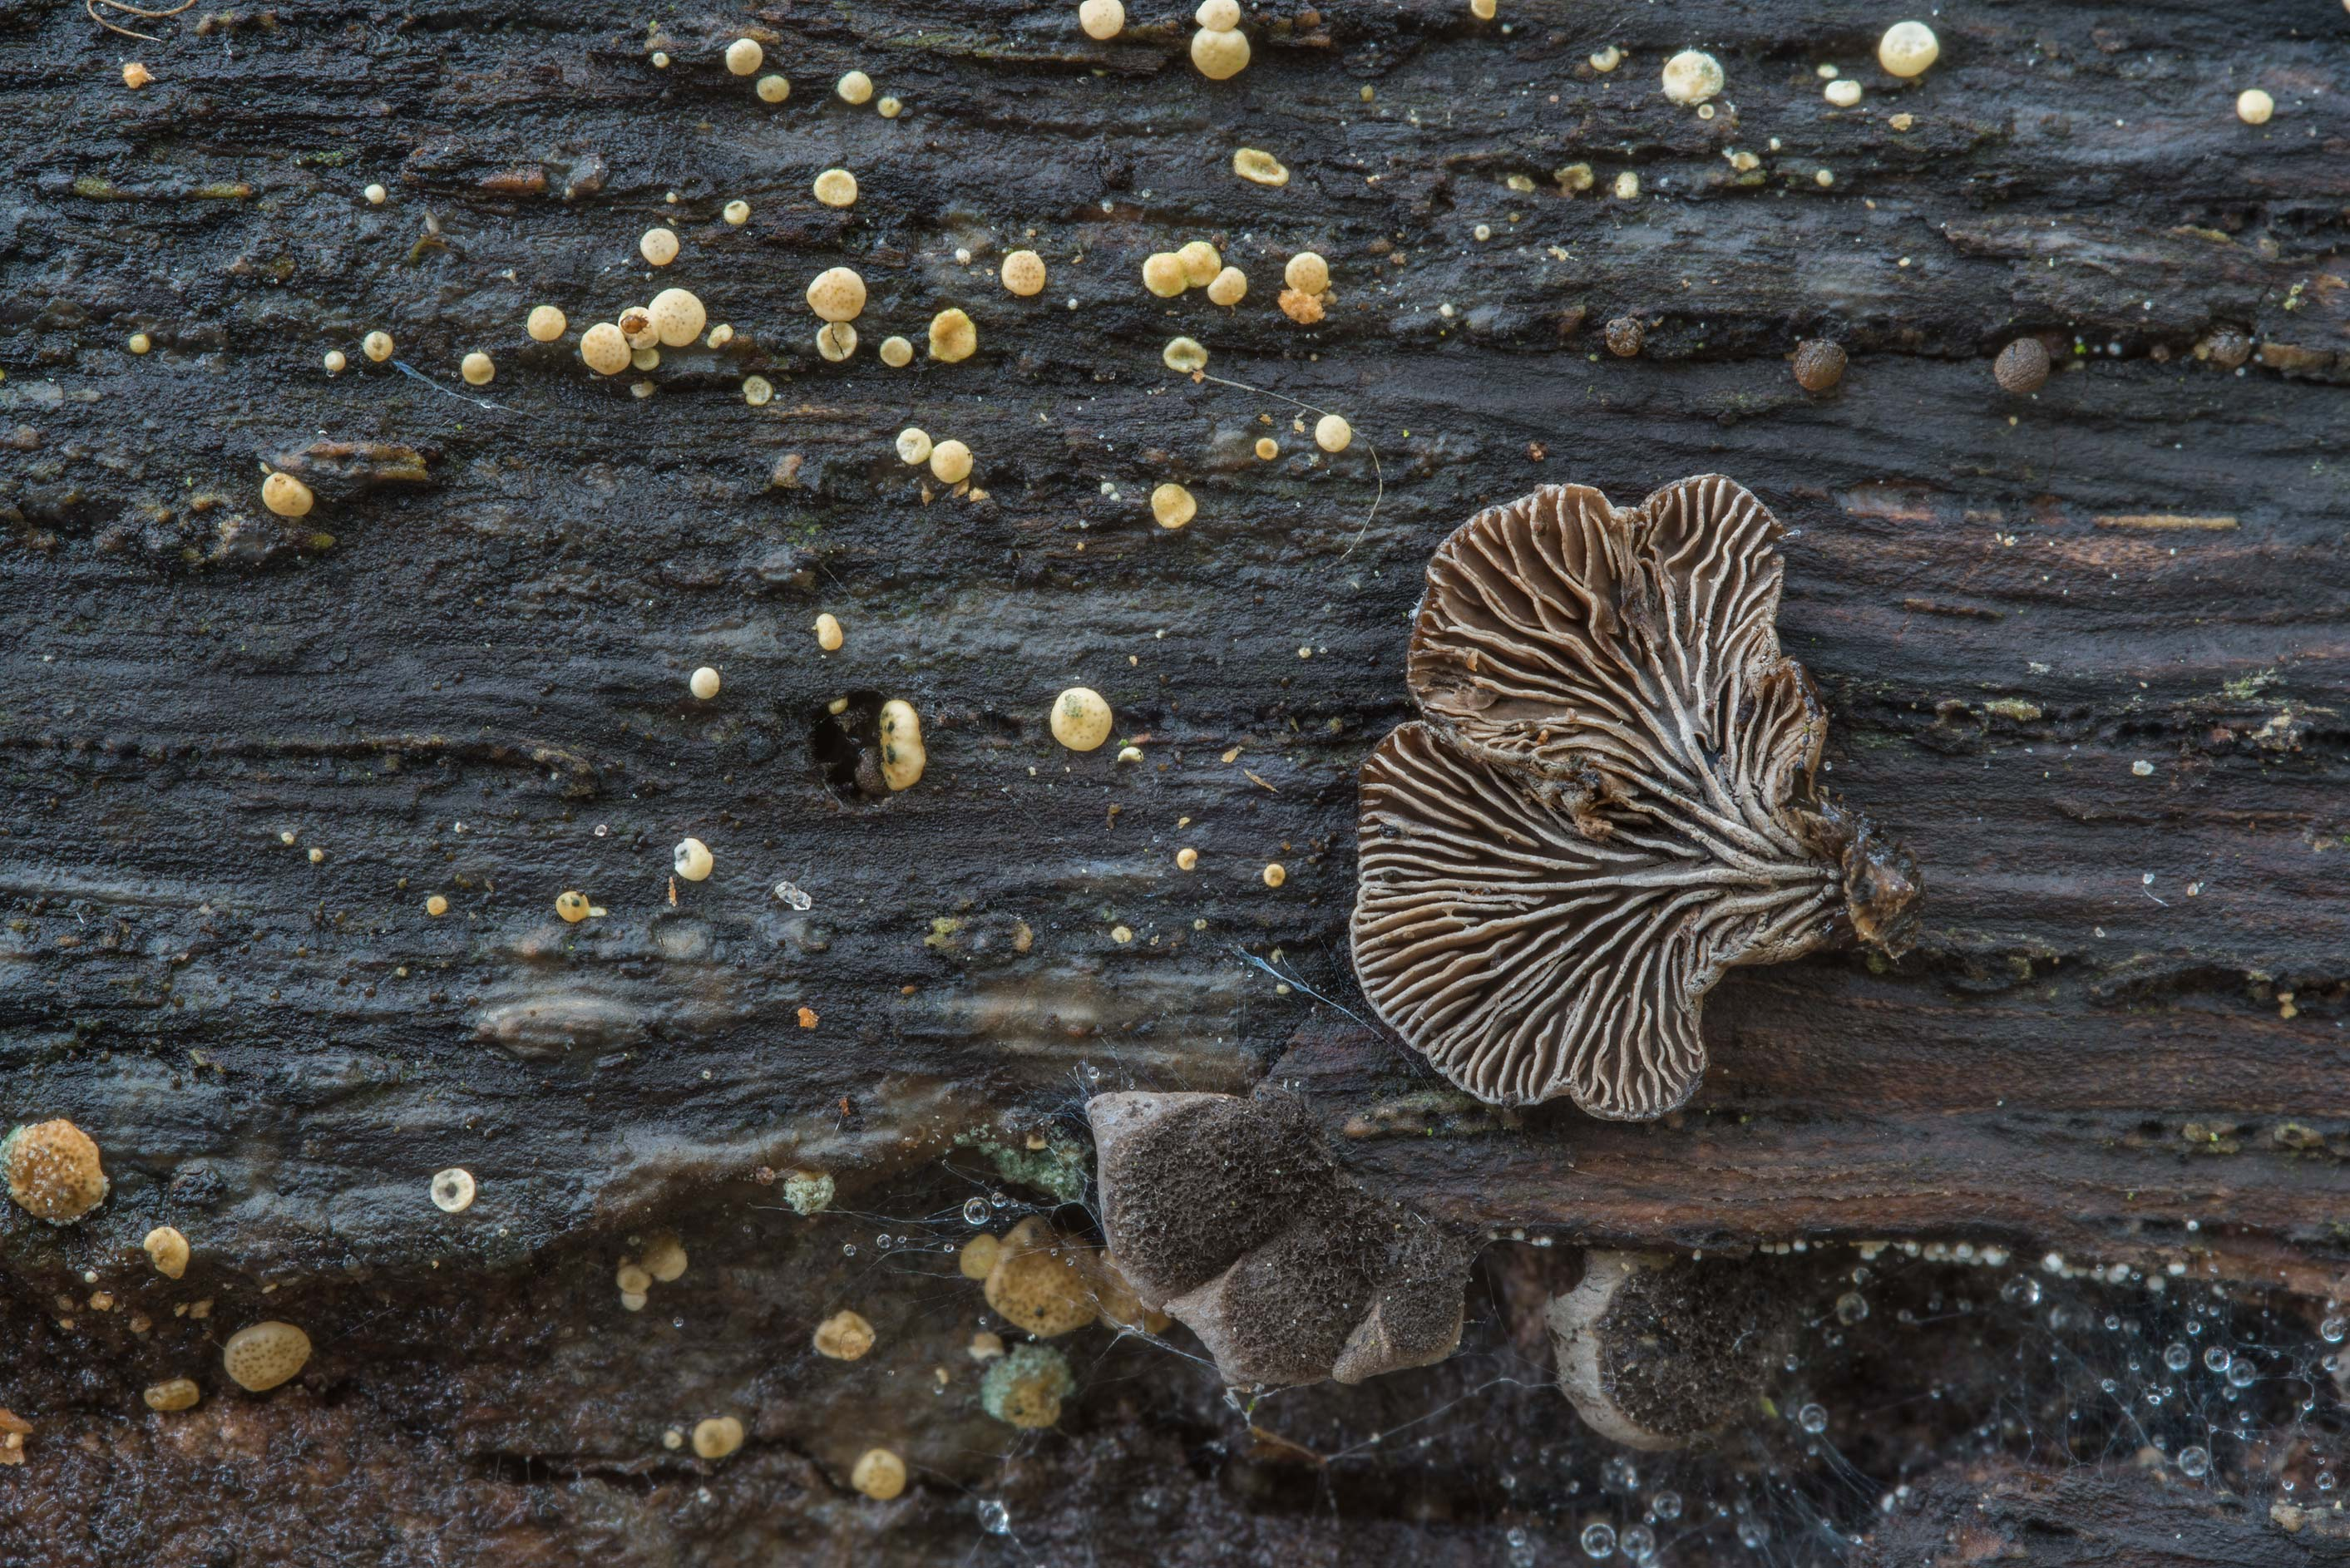 Gills of Resupinatus trichotis mushrooms in Hensel Park. College Station, Texas